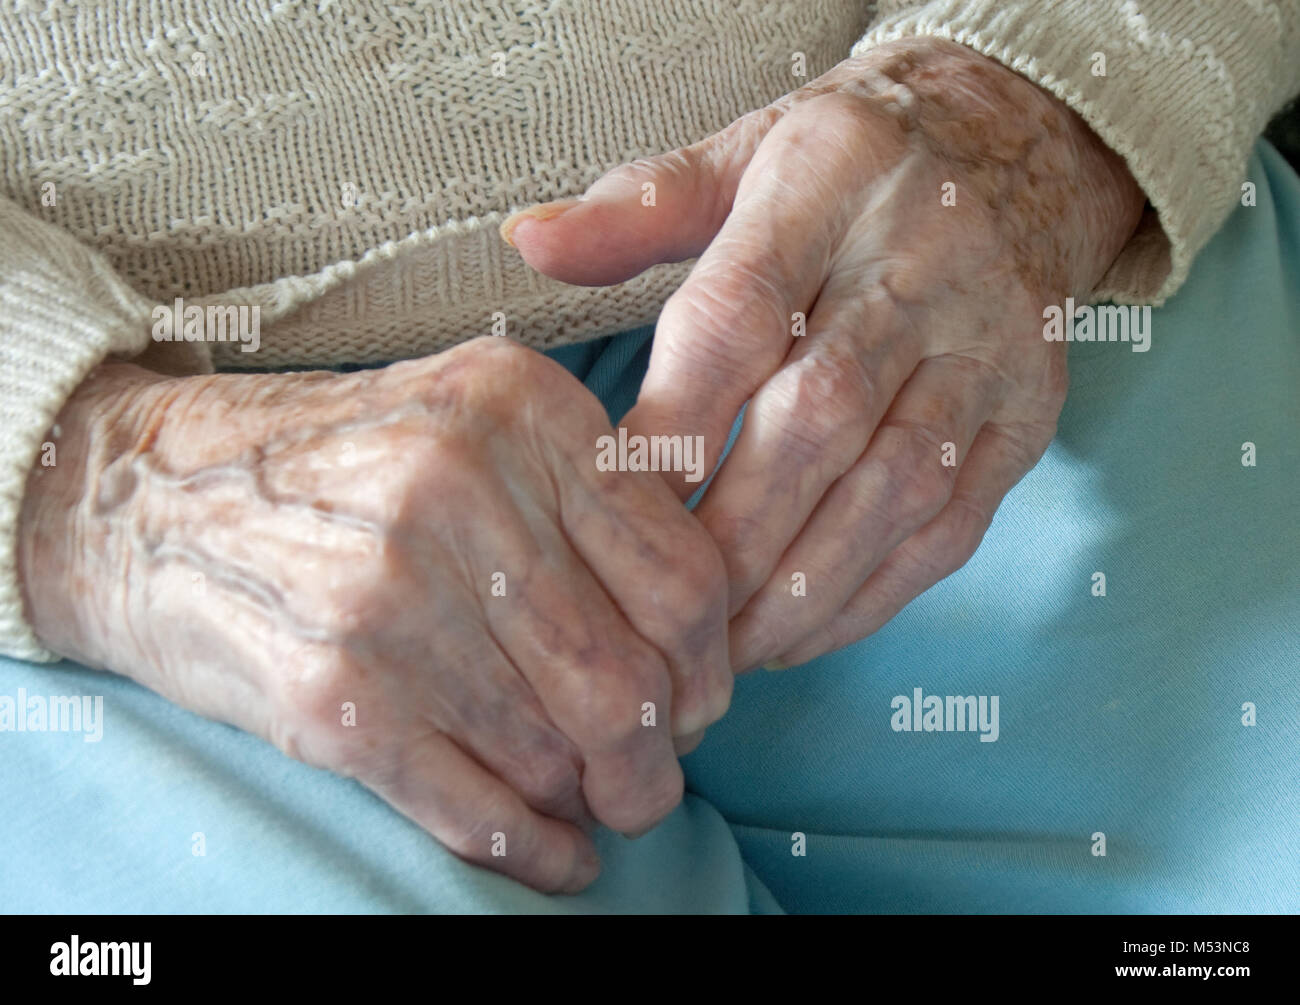 Crooked Fingers Stock Photos & Crooked Fingers Stock Images - Alamy